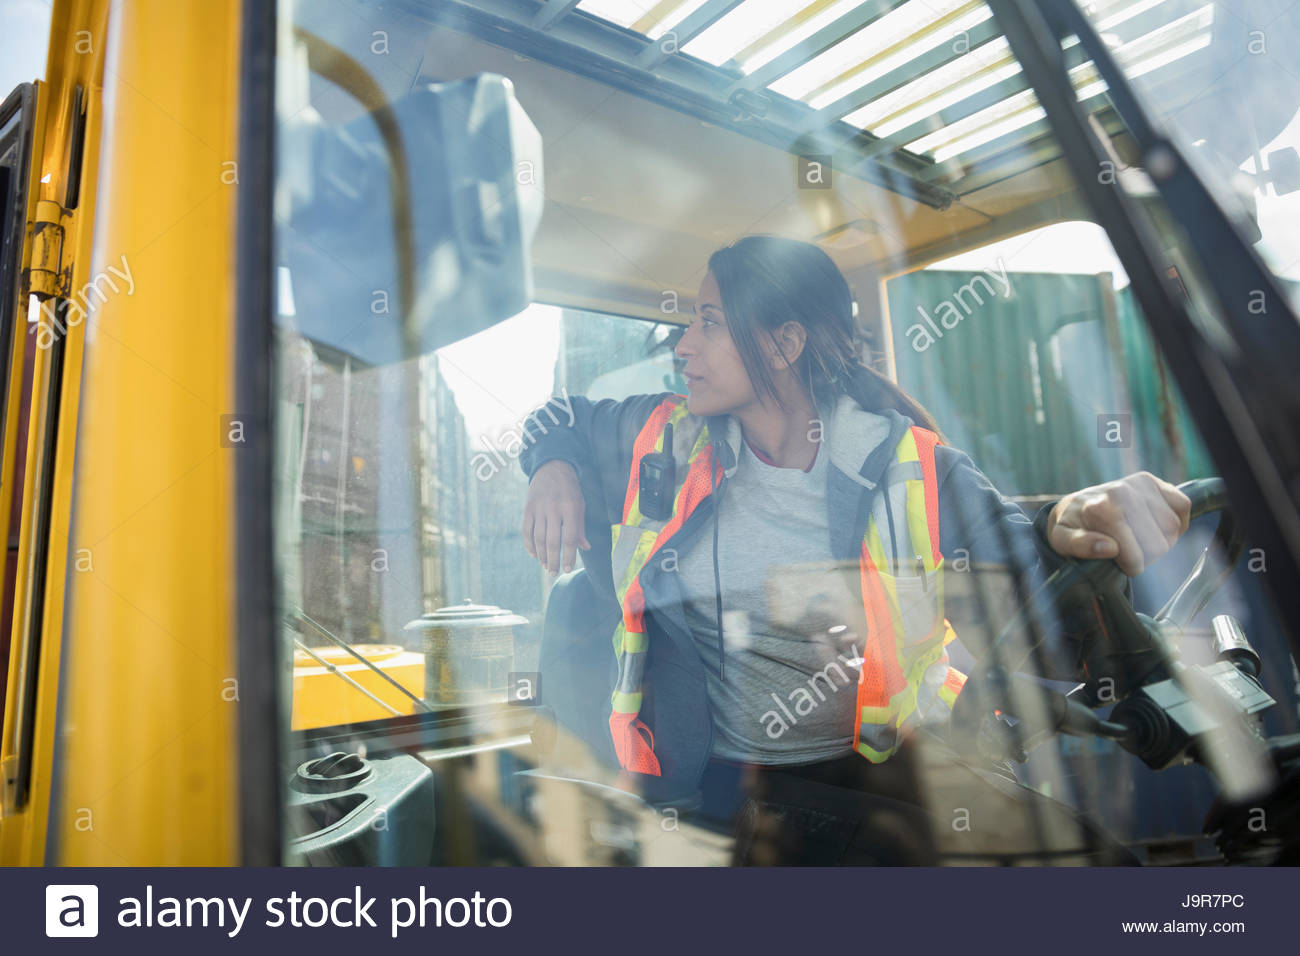 Female forklift driver inside forklift in industrial container yard - Stock Image